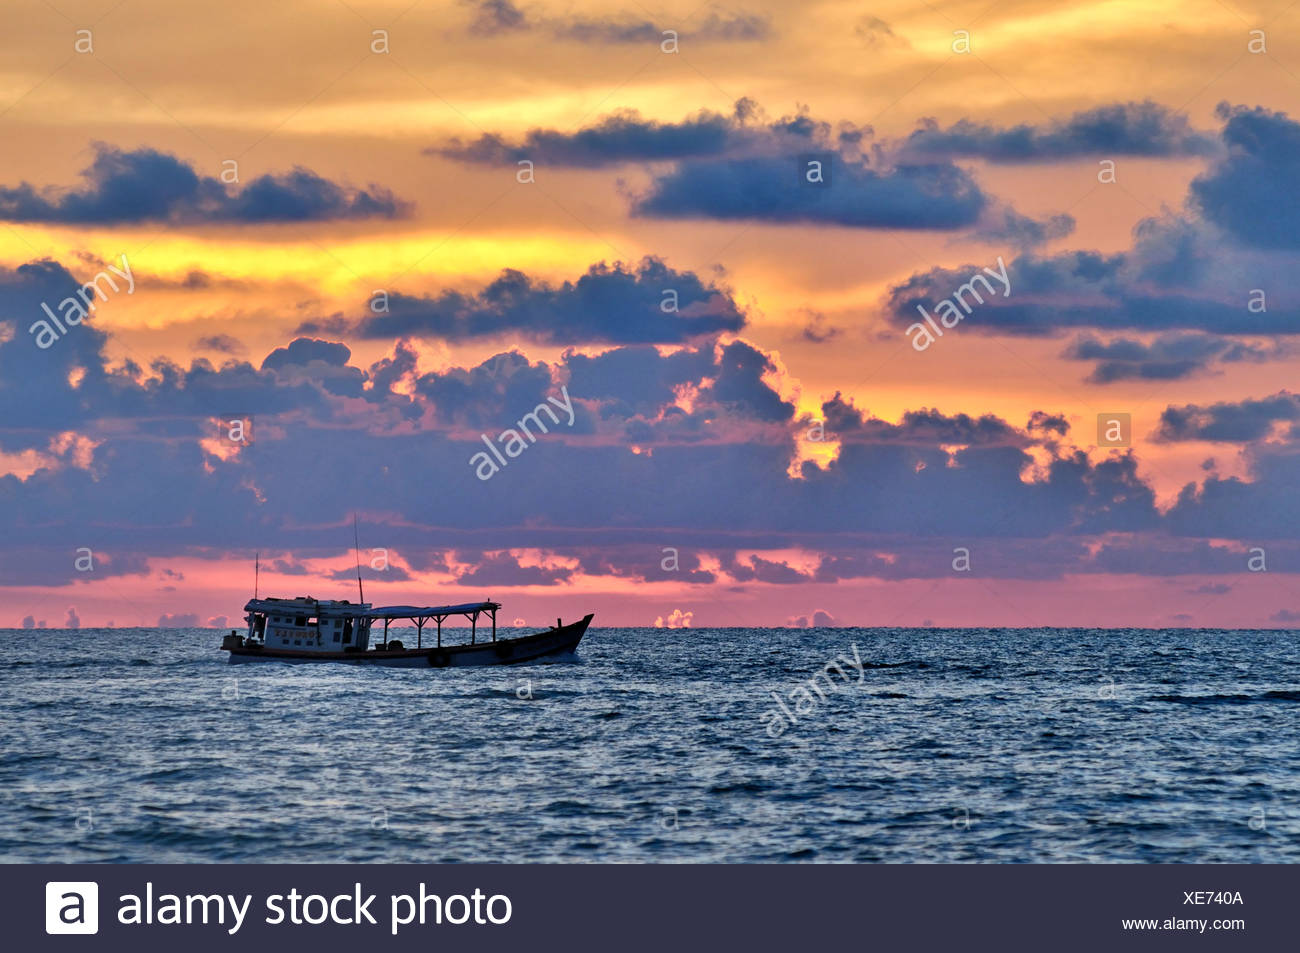 Fishing boat at atmospheric sunset, sea, Phu Quoc, Vietnam, Asia - Stock Image